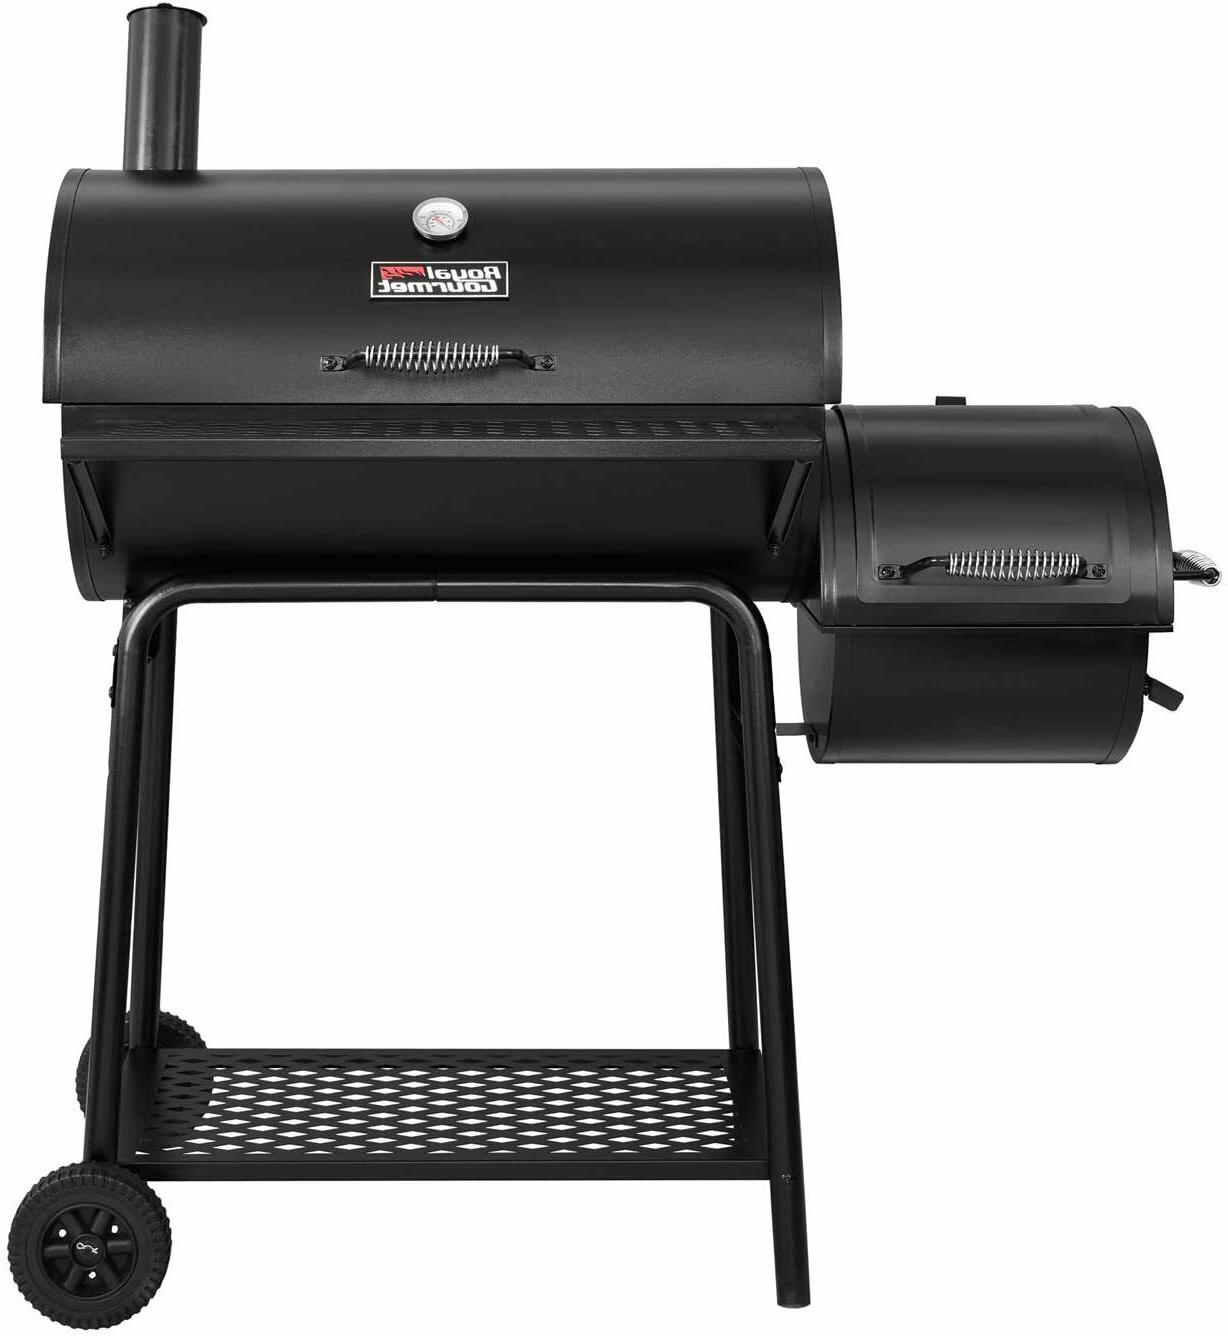 Royal Gourmet Grill with Offset Smoker, Black